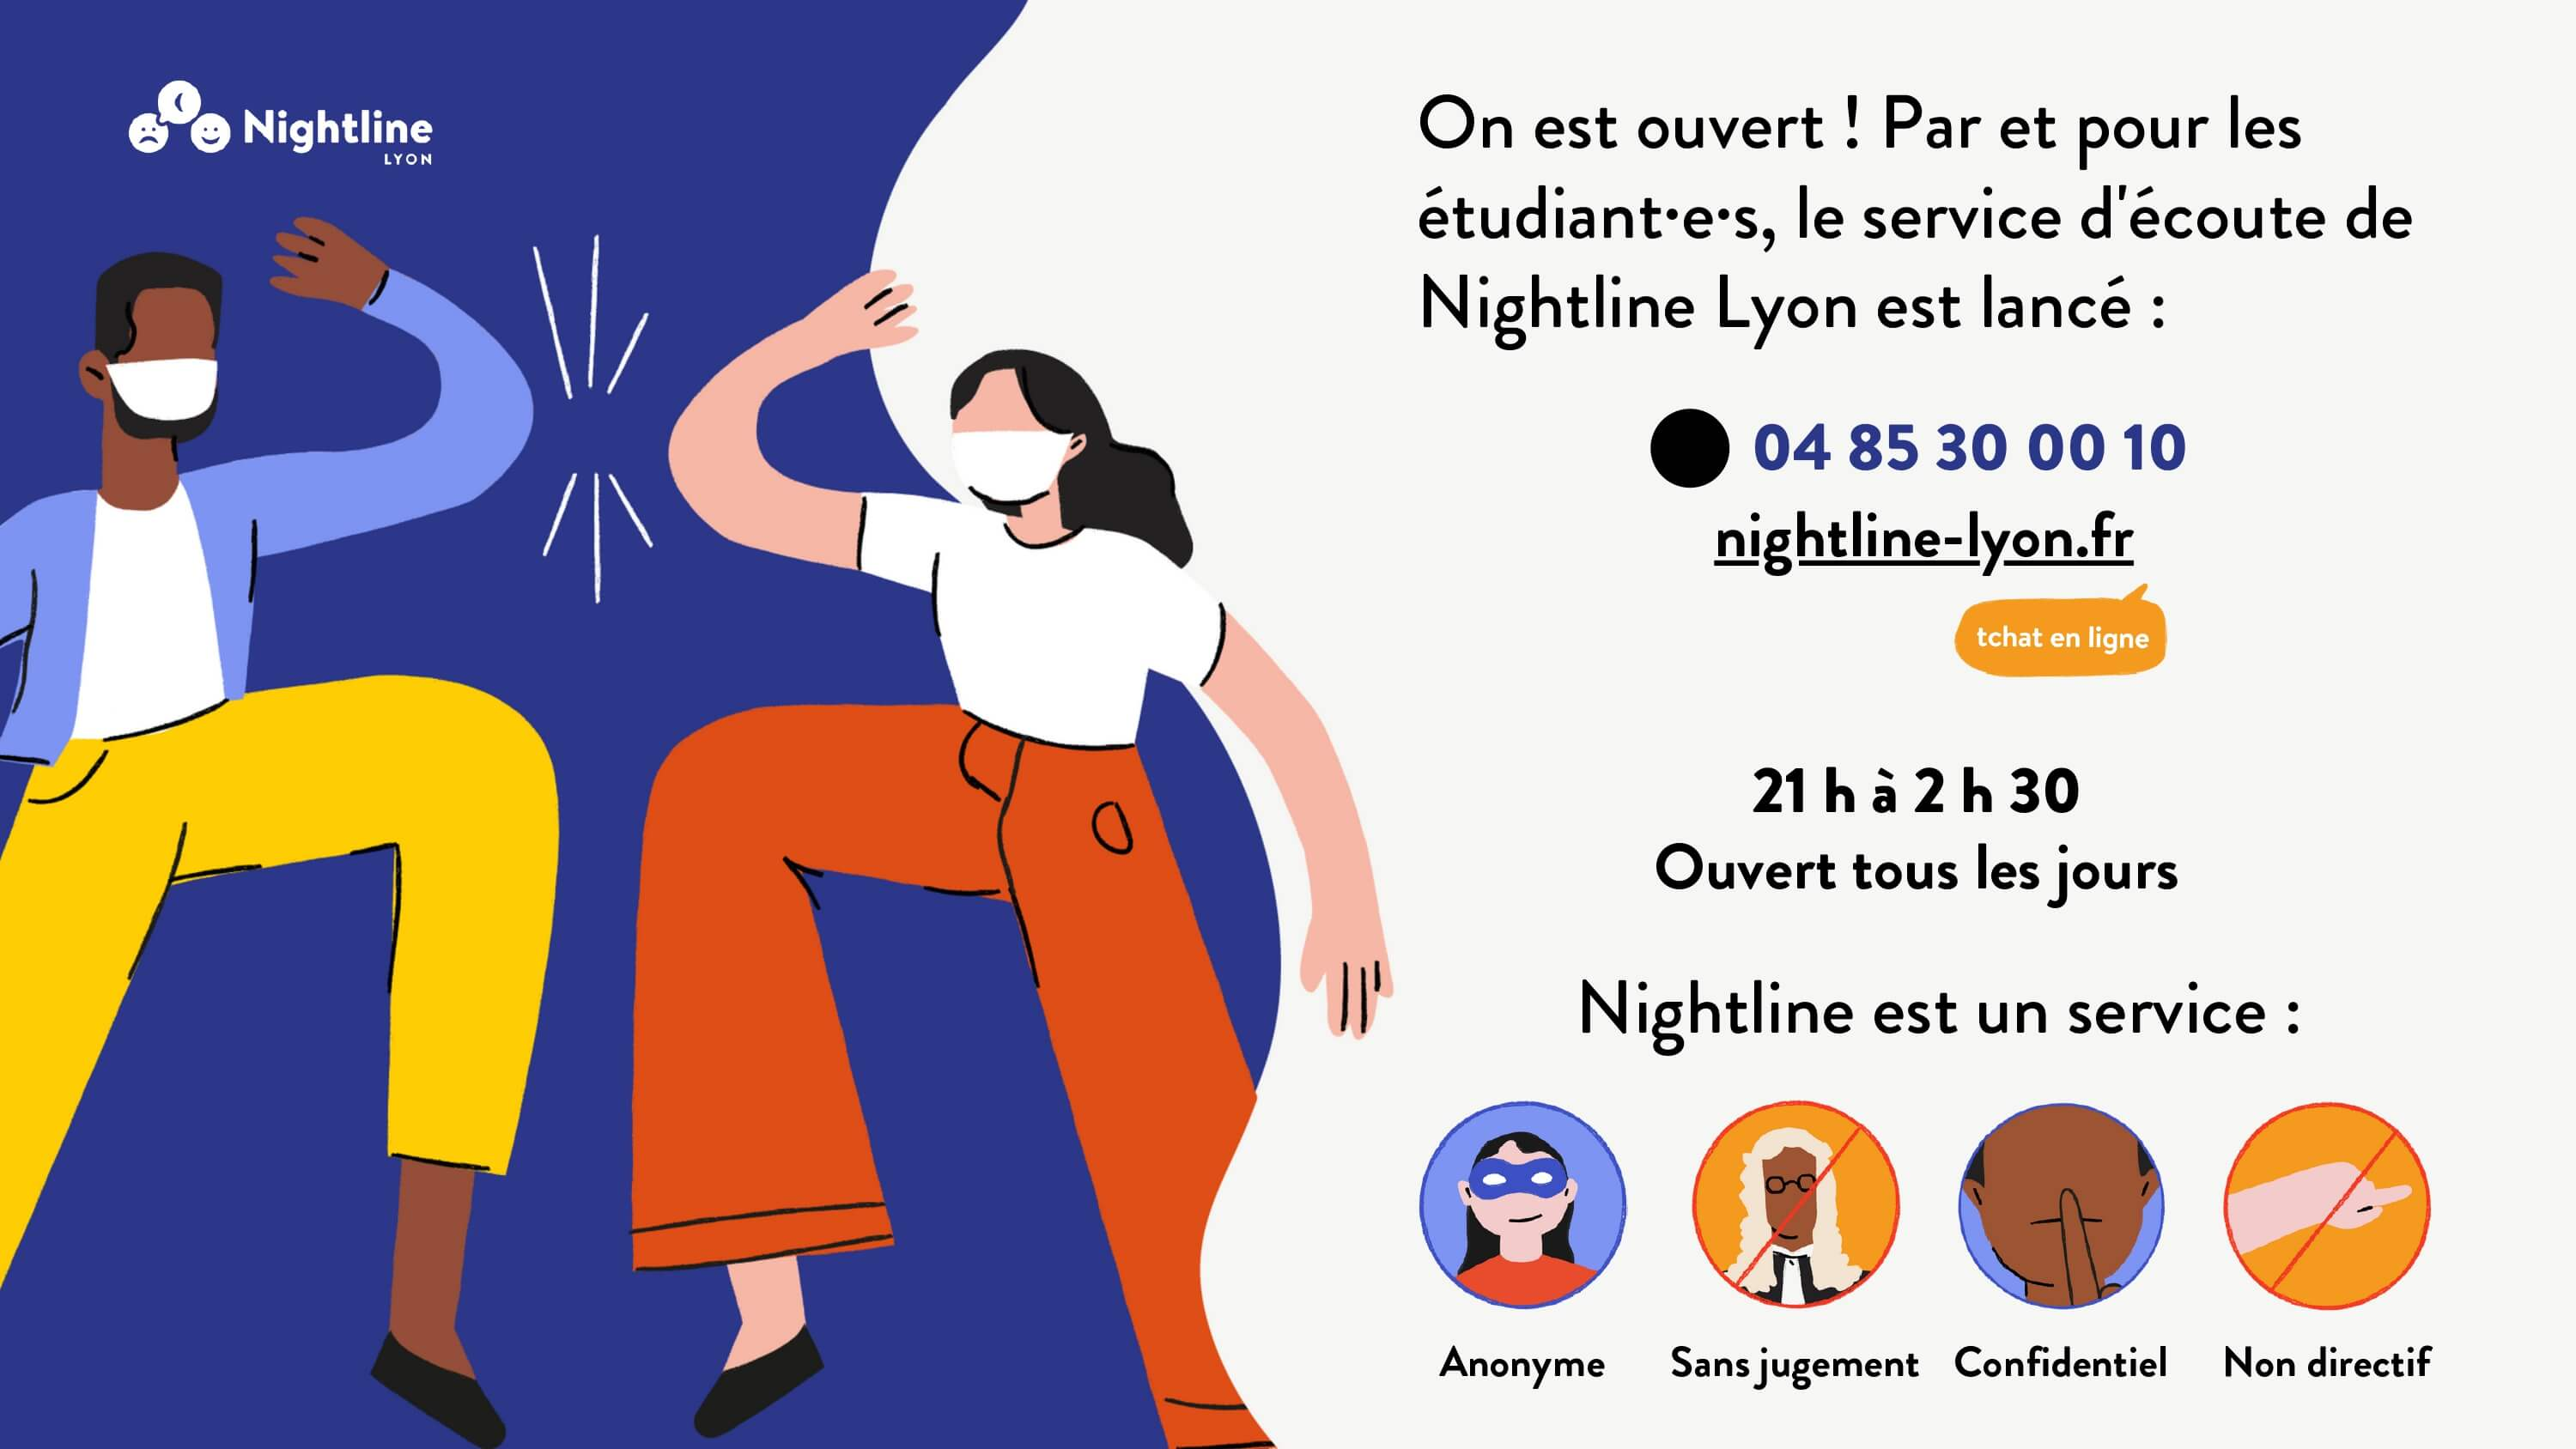 fly nightline lyon 2020